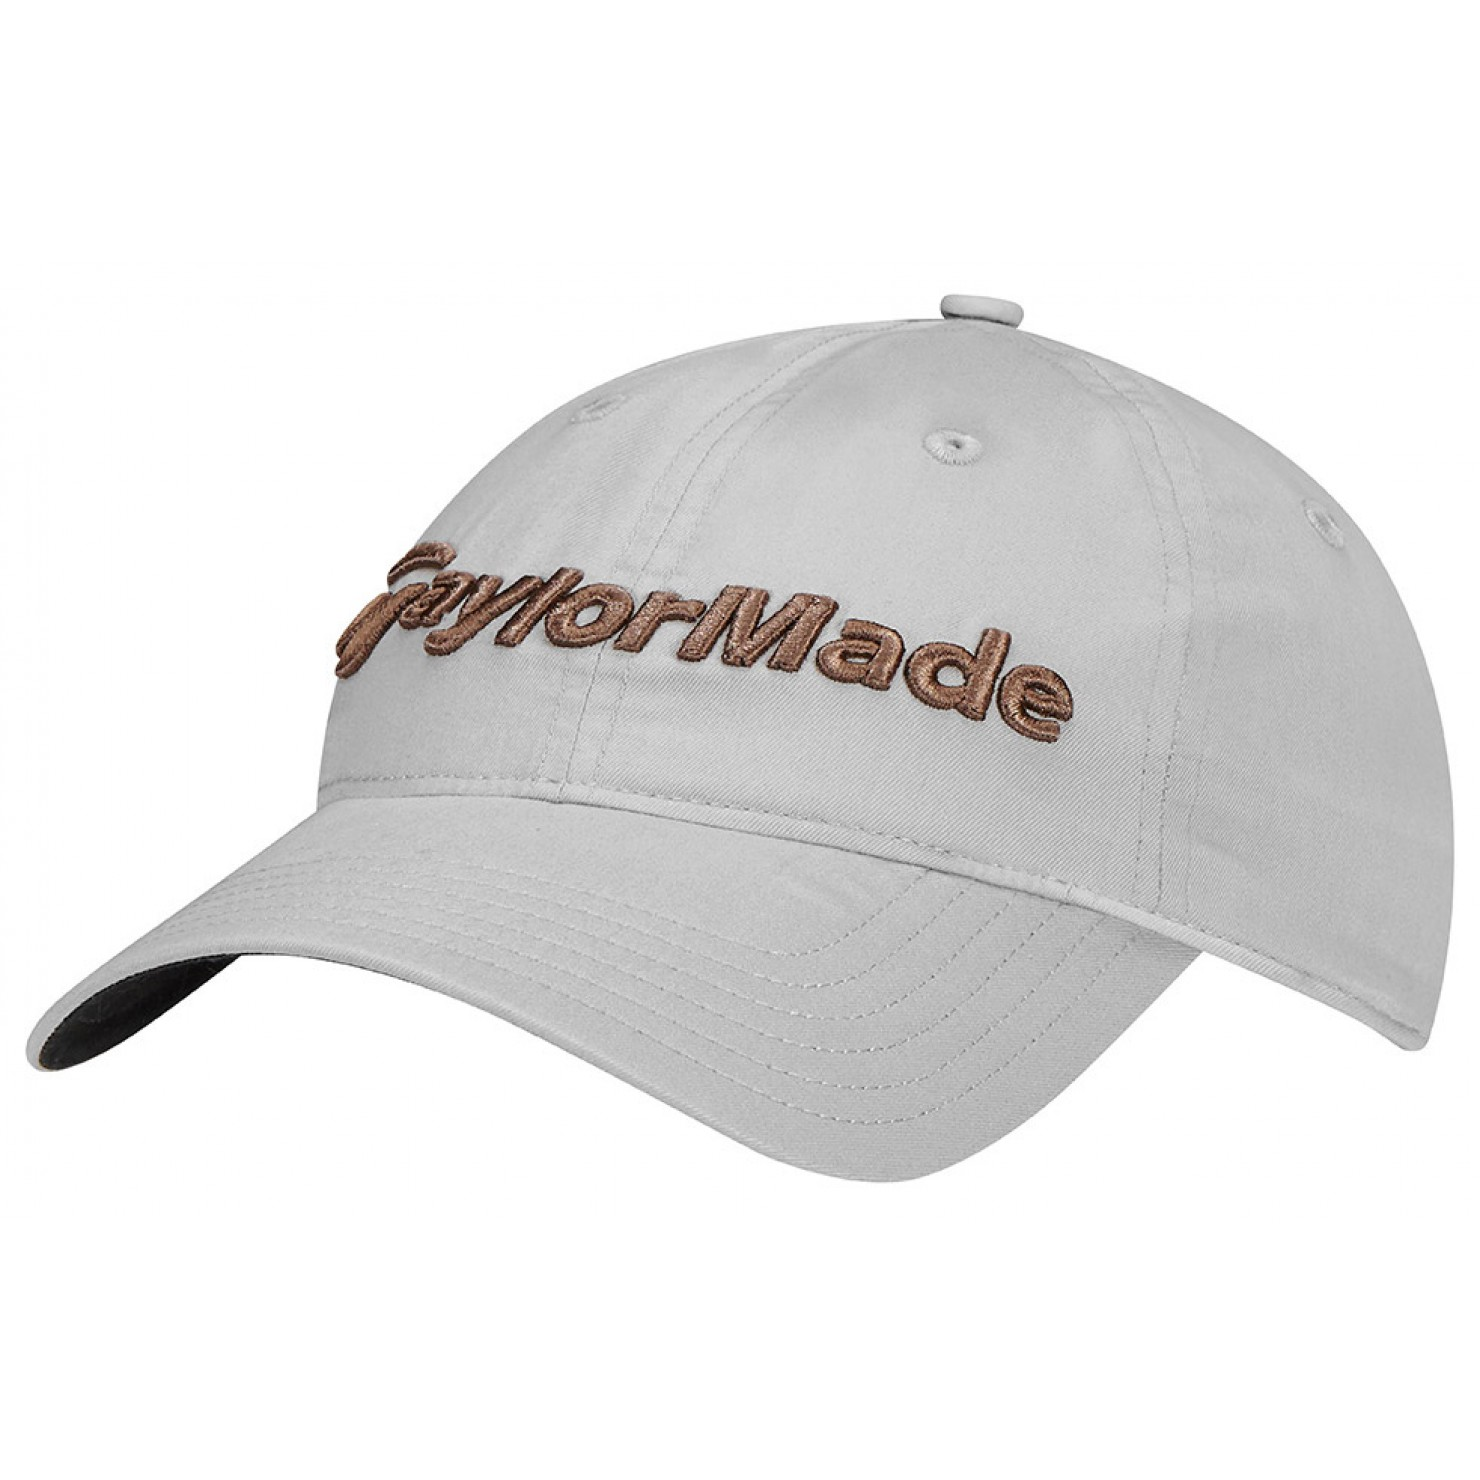 f01471d4488 New TaylorMade Golf 2017 Lifestyle Tradition Lite Adjustable Hat Cap ...